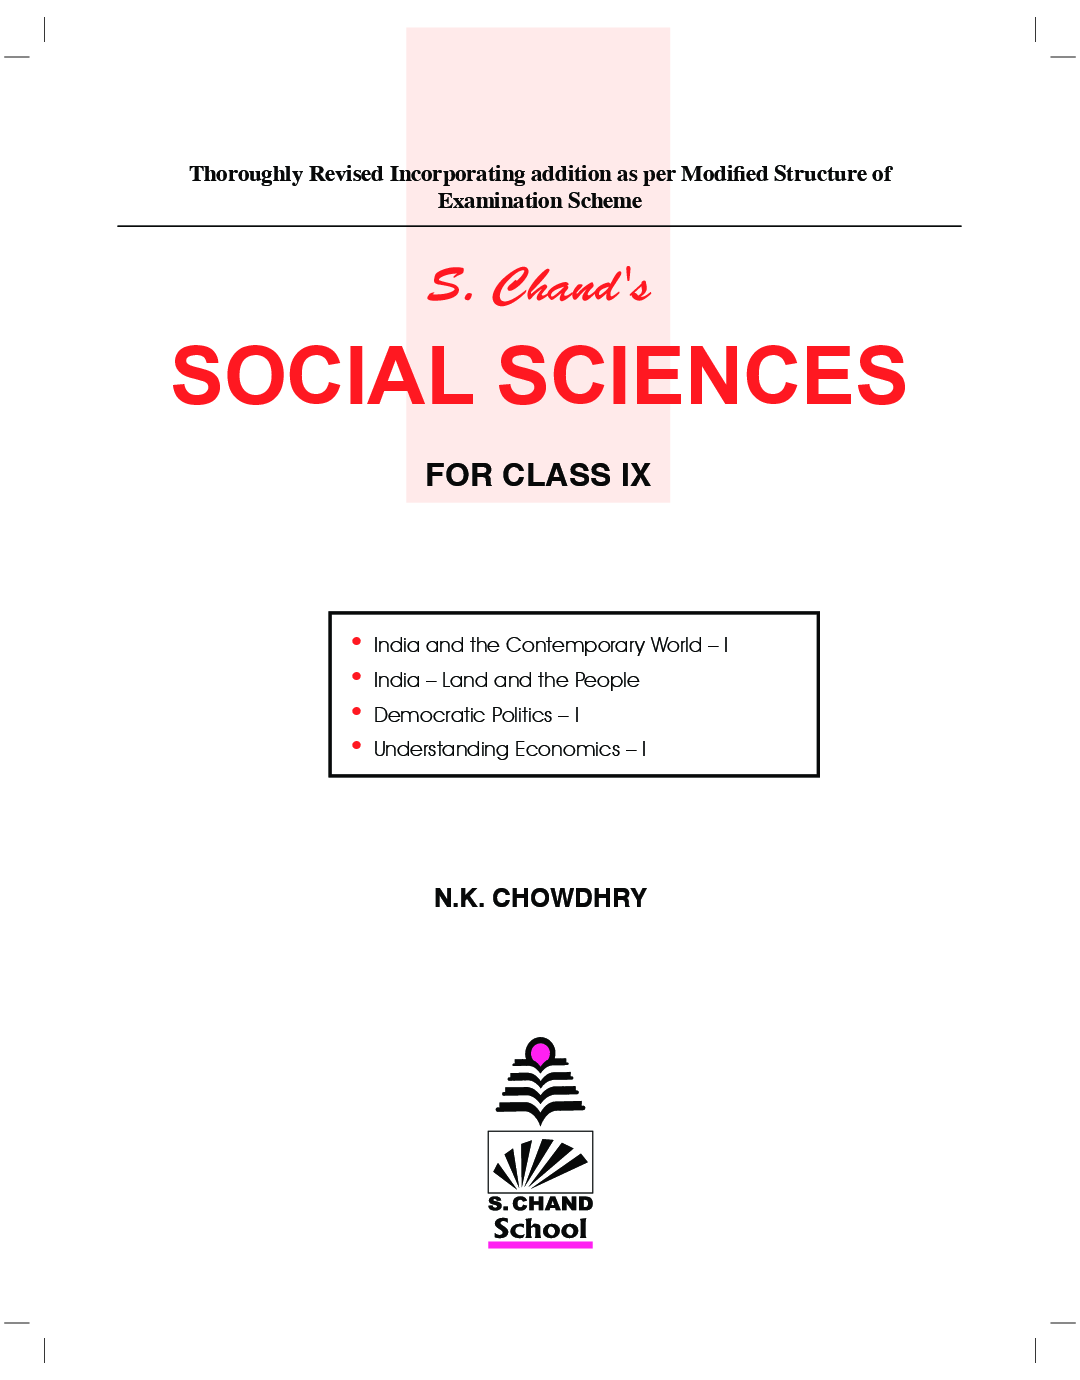 Schand Social Science For Class - IX - Page 2